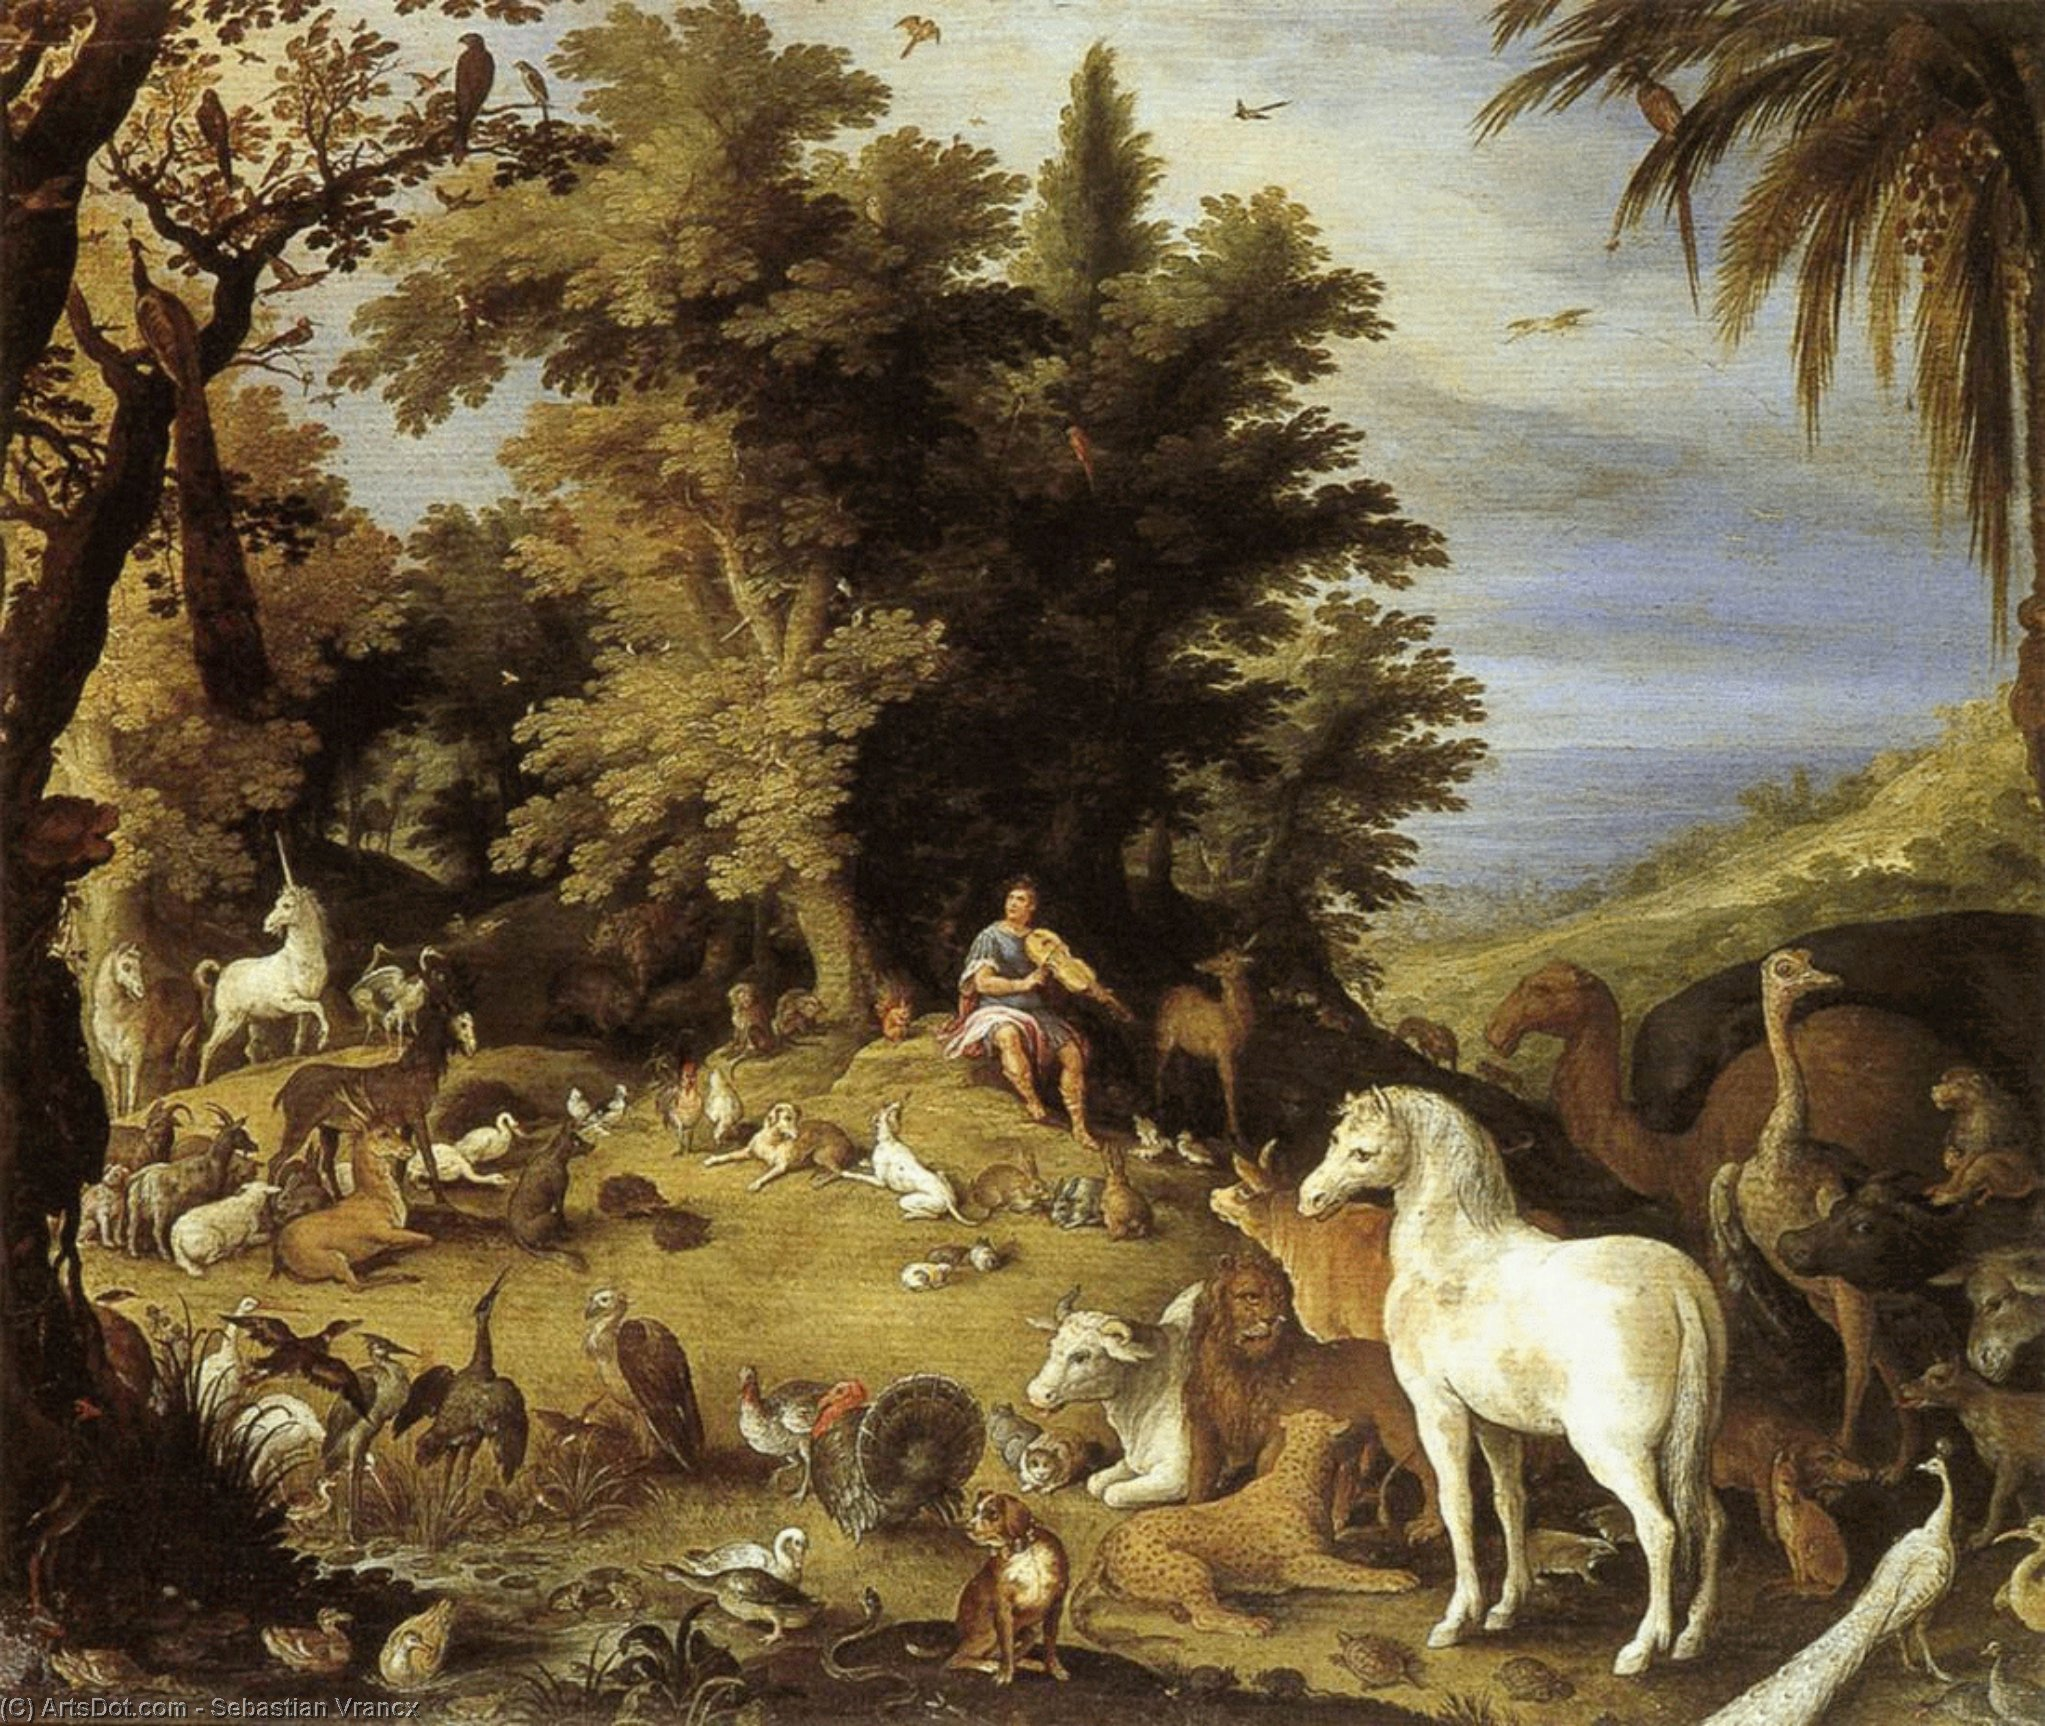 Orpheus and the Beasts, Oil On Panel by Sebastian Vrancx (1573-1647, Belgium)